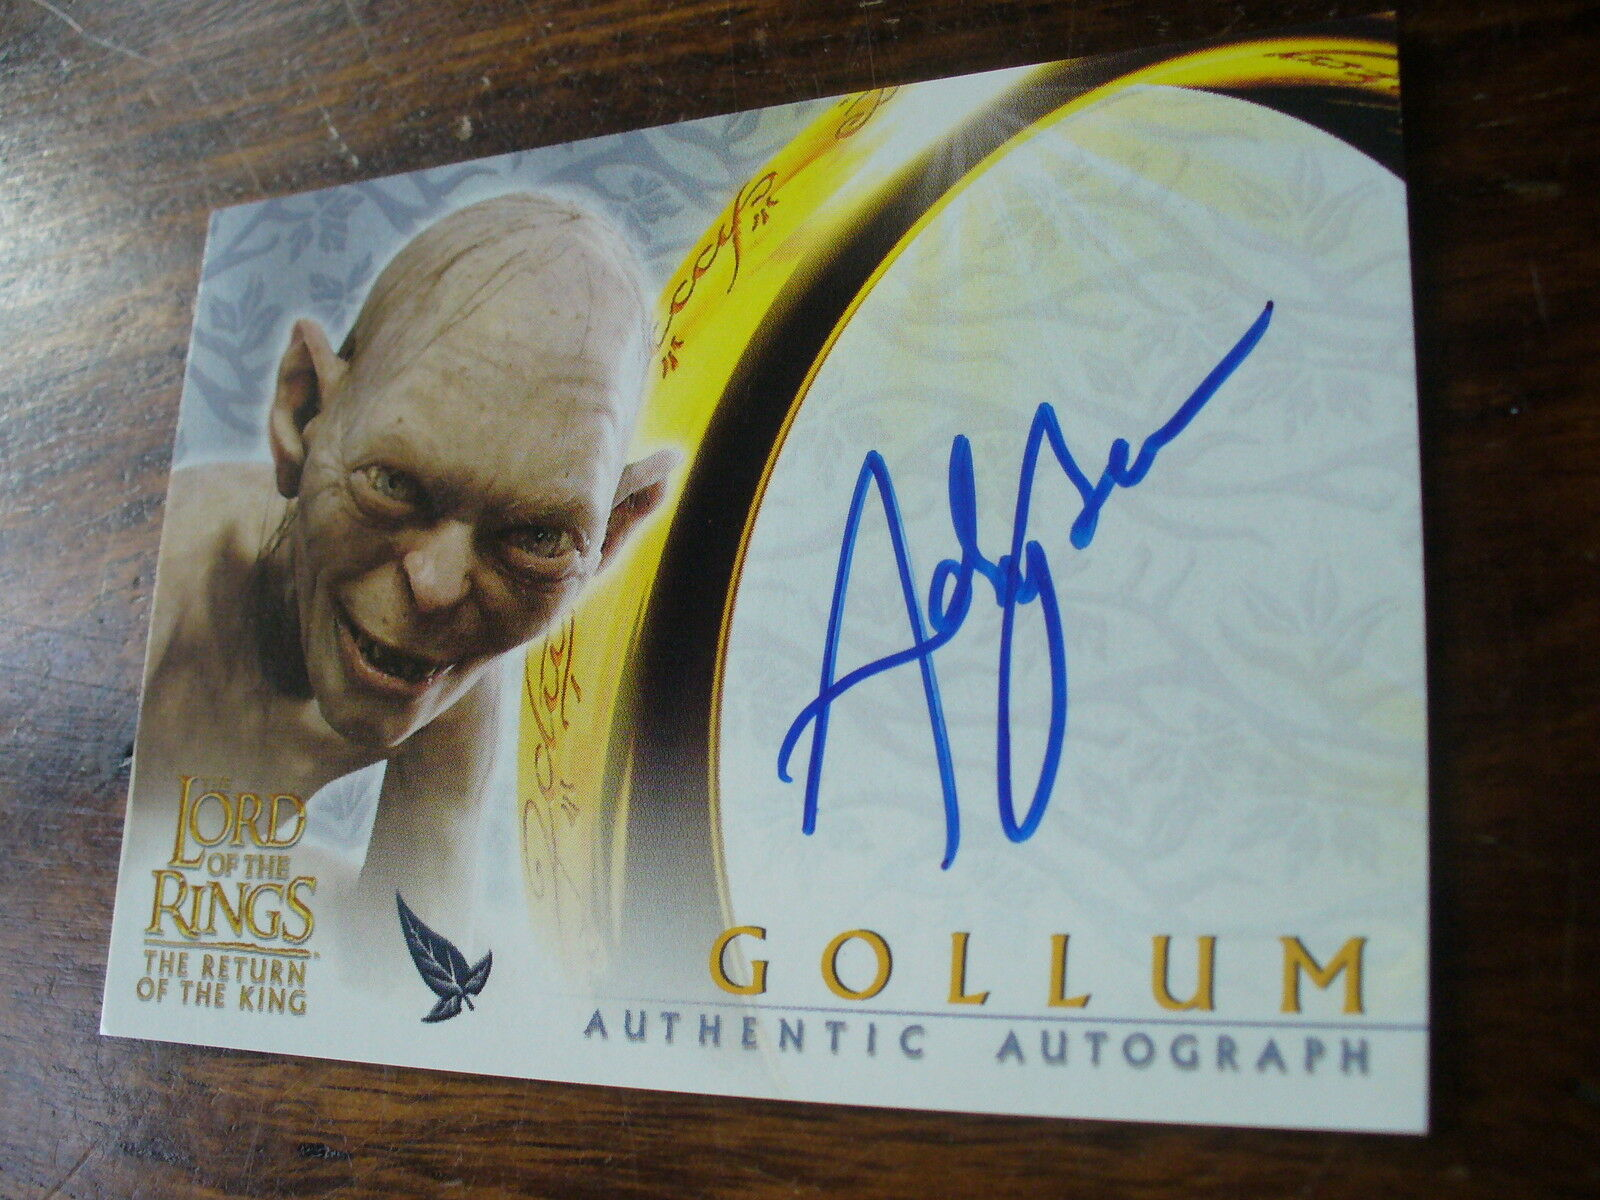 Topps LOTR Return of the King Authentic Autograph Card Andy Serkis as Gollum